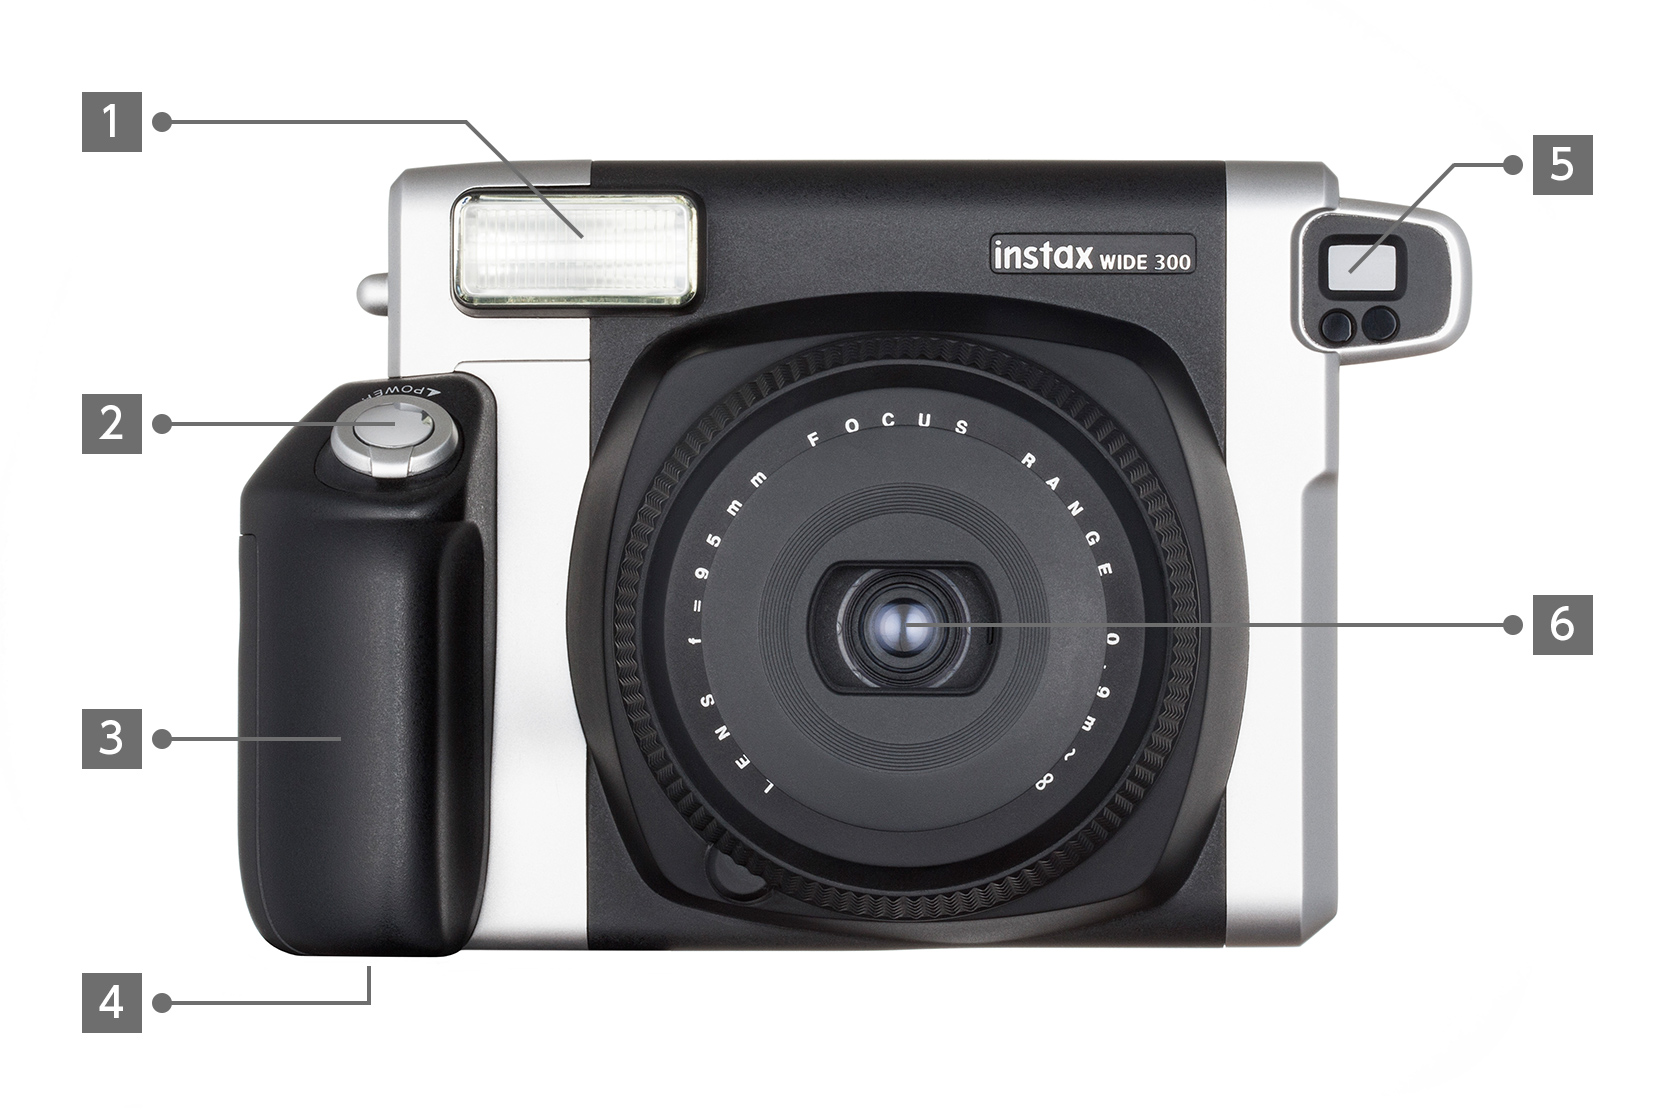 Front view of WIDE 300 camera